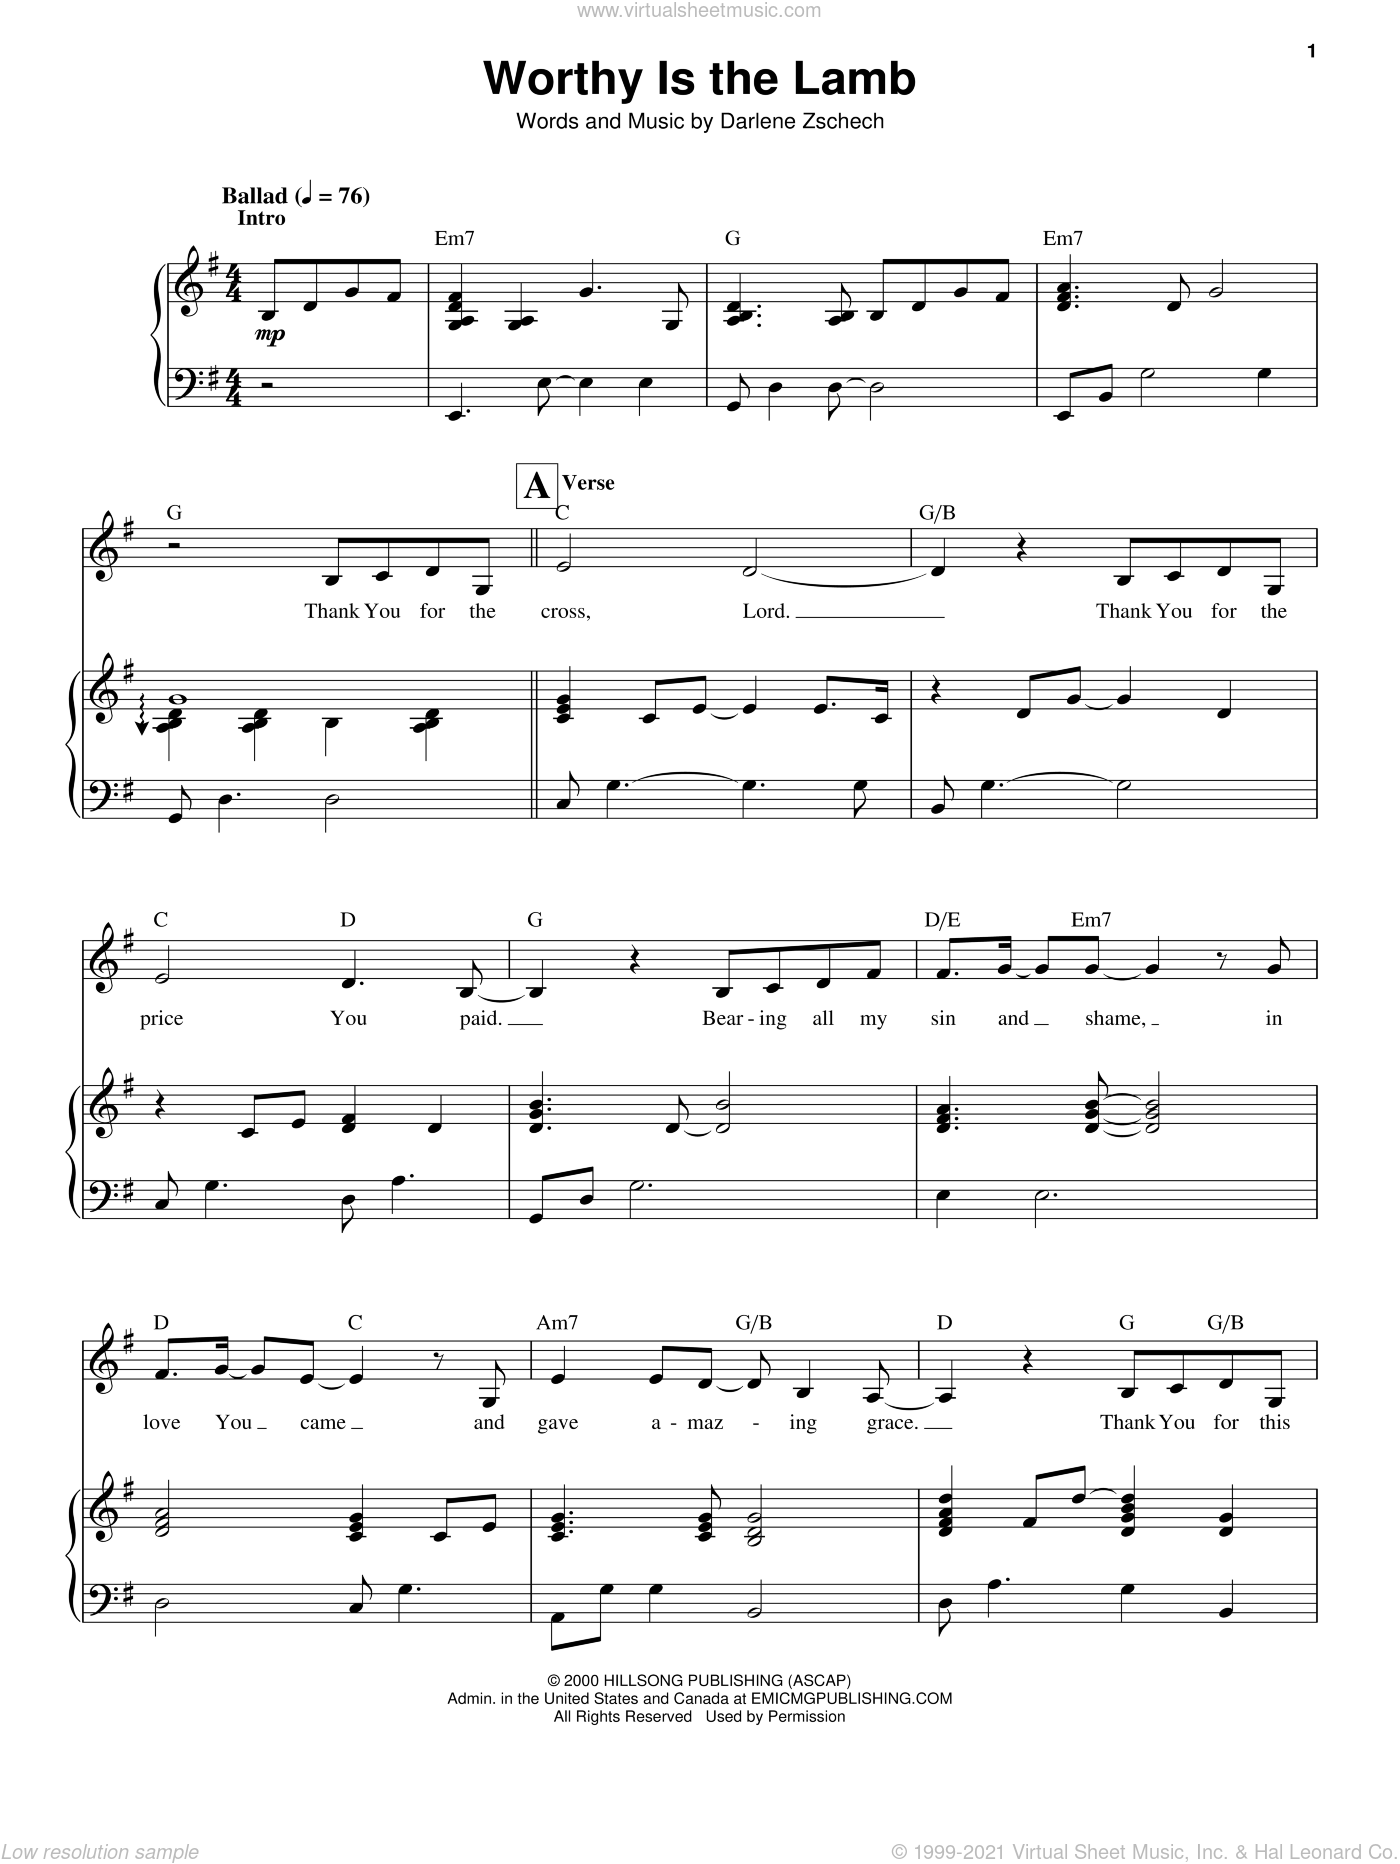 Worthy Is The Lamb sheet music for voice and piano by Darlene Zschech, intermediate. Score Image Preview.